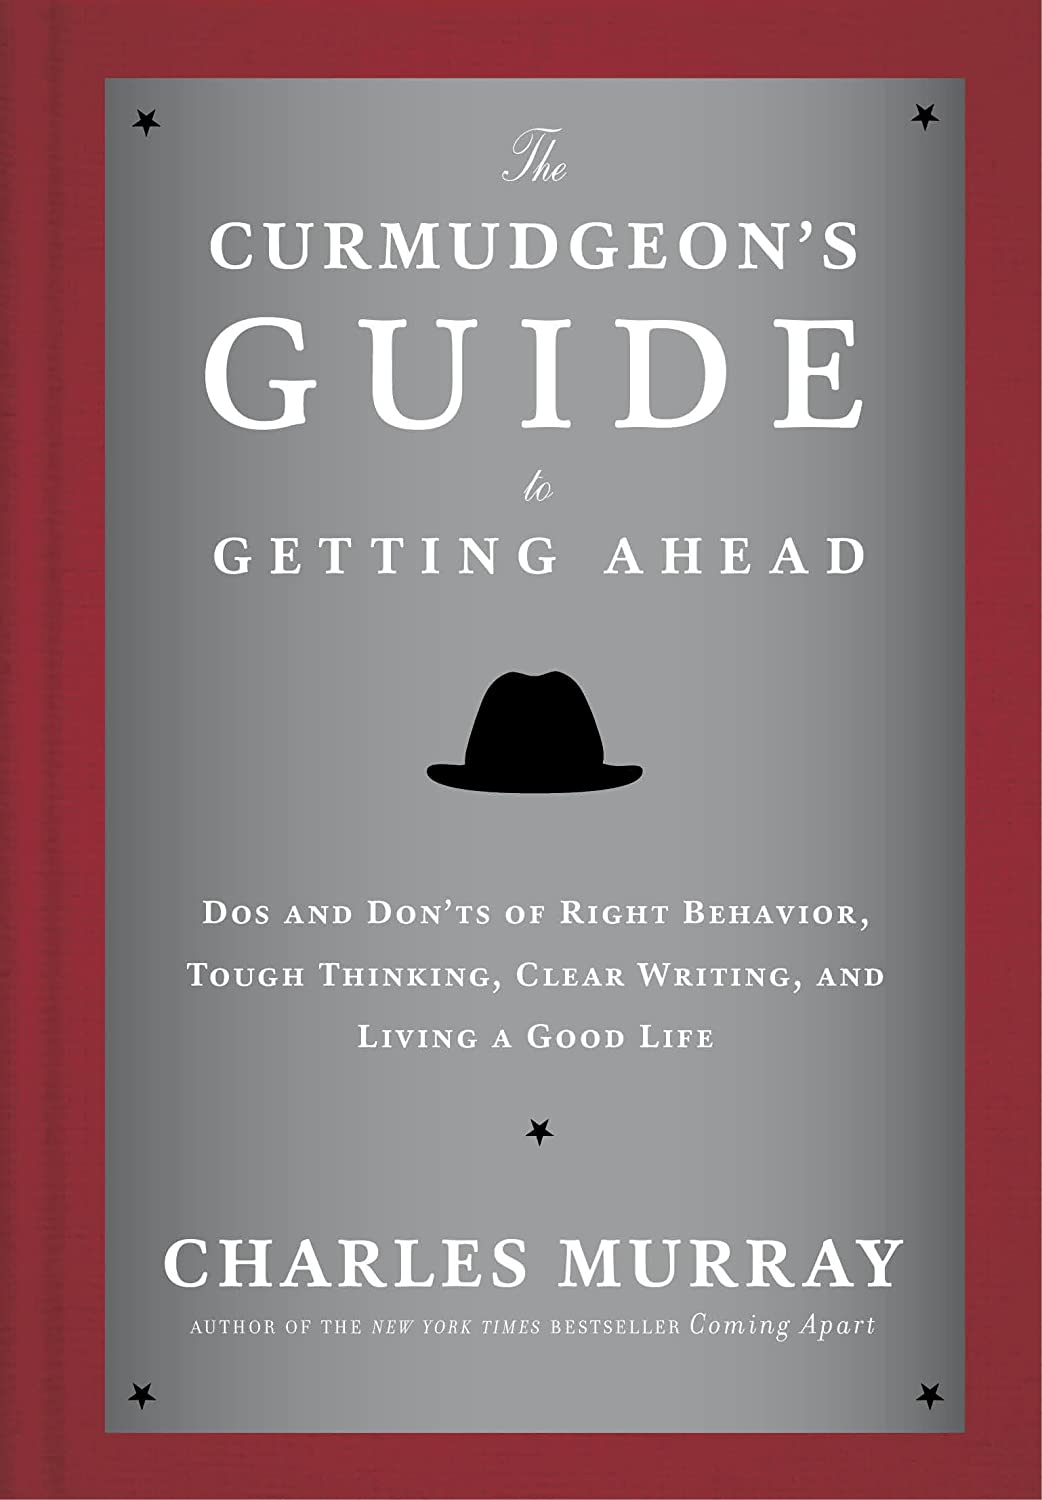 Murray – The Curmudgeon's Guide to Getting Ahead; Dos and Don'ts of Right Behavior, Tough Thinking, Clear Writing, and Living a Good Life